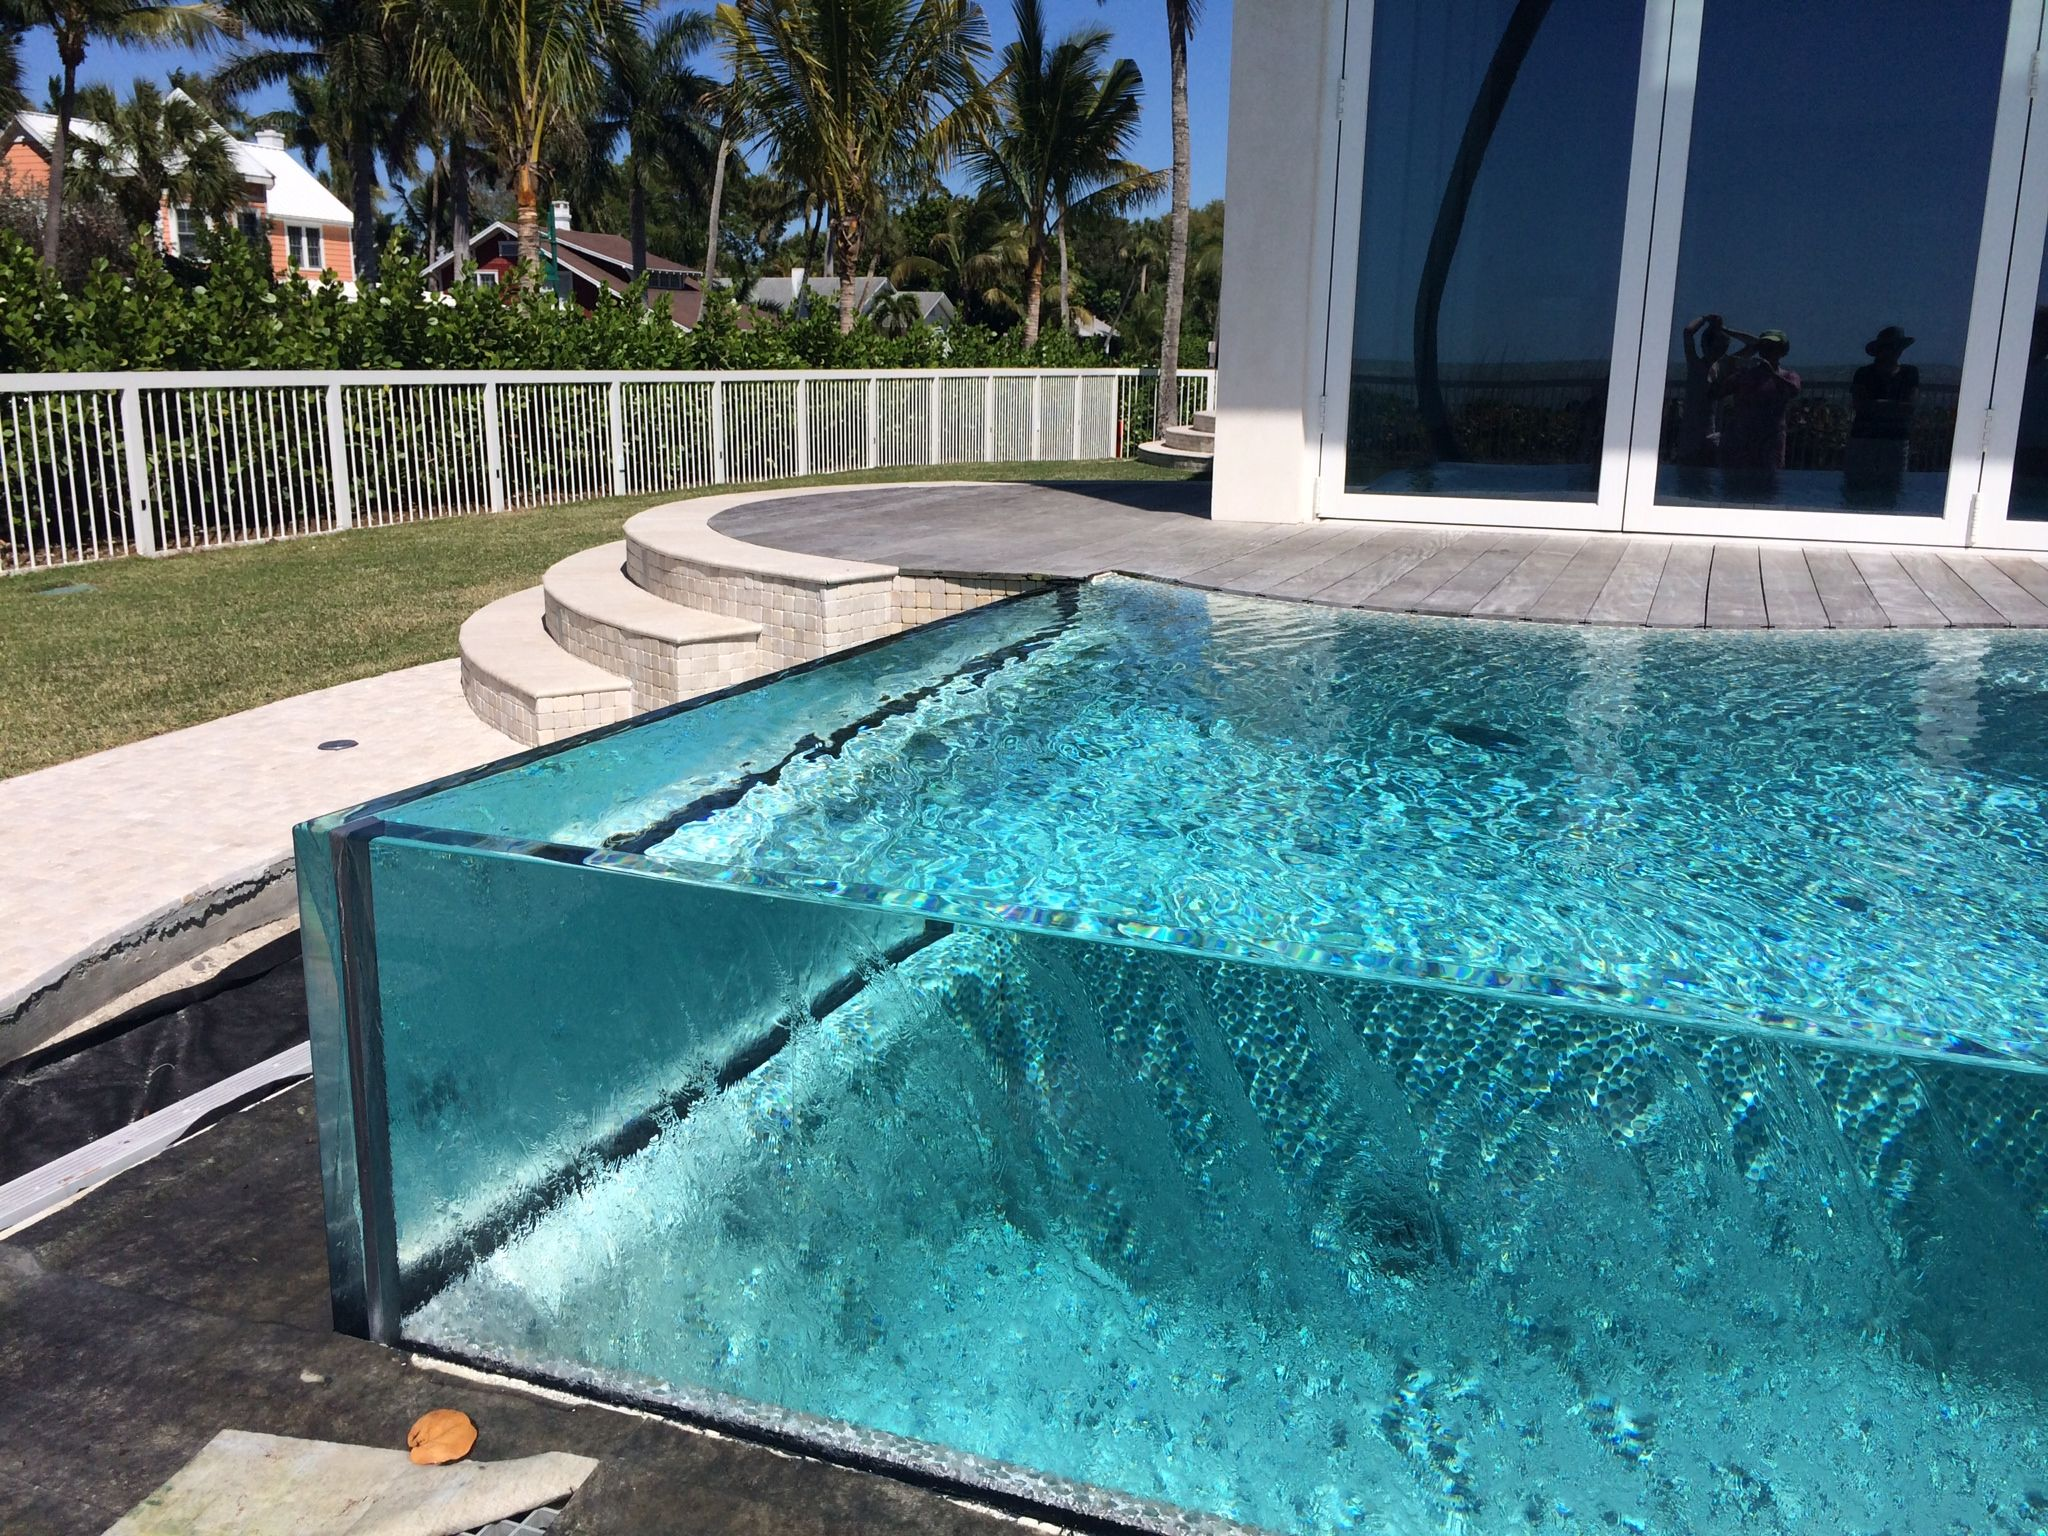 18x34 Freeform gunite swimming pool with raised wall